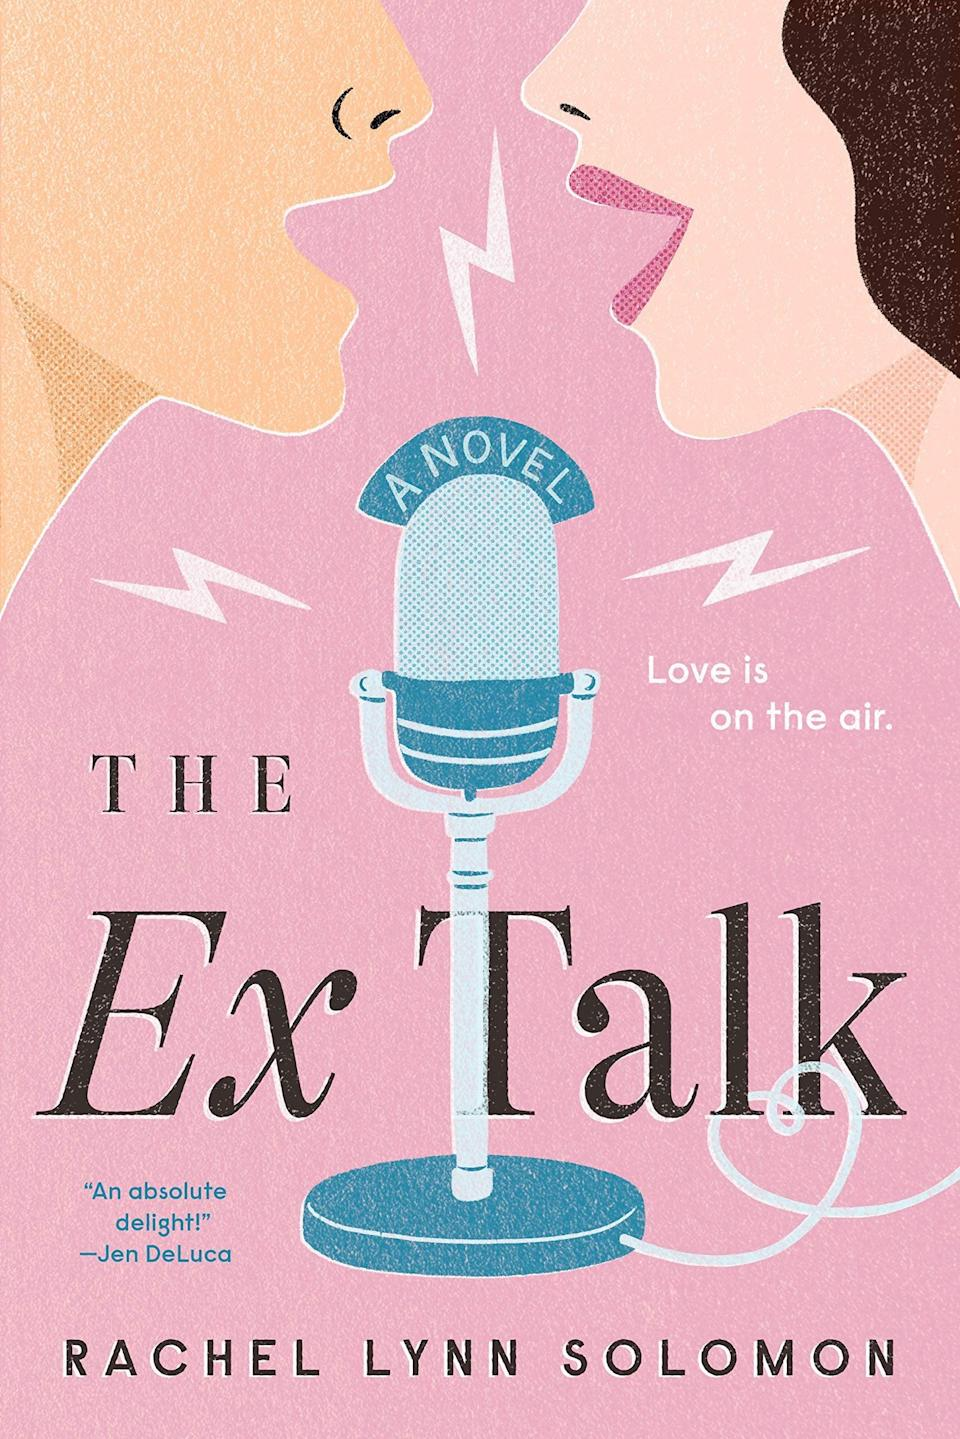 <p>Give them a behind-the-scenes look at all things public radio with <span><strong>The Ex Talk</strong> by Rachel Lynn Solomon</span> ($14), which tells the story of Shay Goldstein, a producer at a struggling public radio station. When Shay pitches a show idea in which two exes dish out relationship advice on air, she never expects her boss to recruit her colleague and work nemesis, Dominic Yun, to be her cohost - a tricky situation considering they never actually dated each other.</p> <p>In addition to the love story (which is equal parts sweet and steamy), this book gives a fascinating look into public radio and everything that comes with a job in the field, from pitching ideas to producing shows. The book also includes transcript snippets of Shay and Dominic's radio show, which are hilarious.</p>